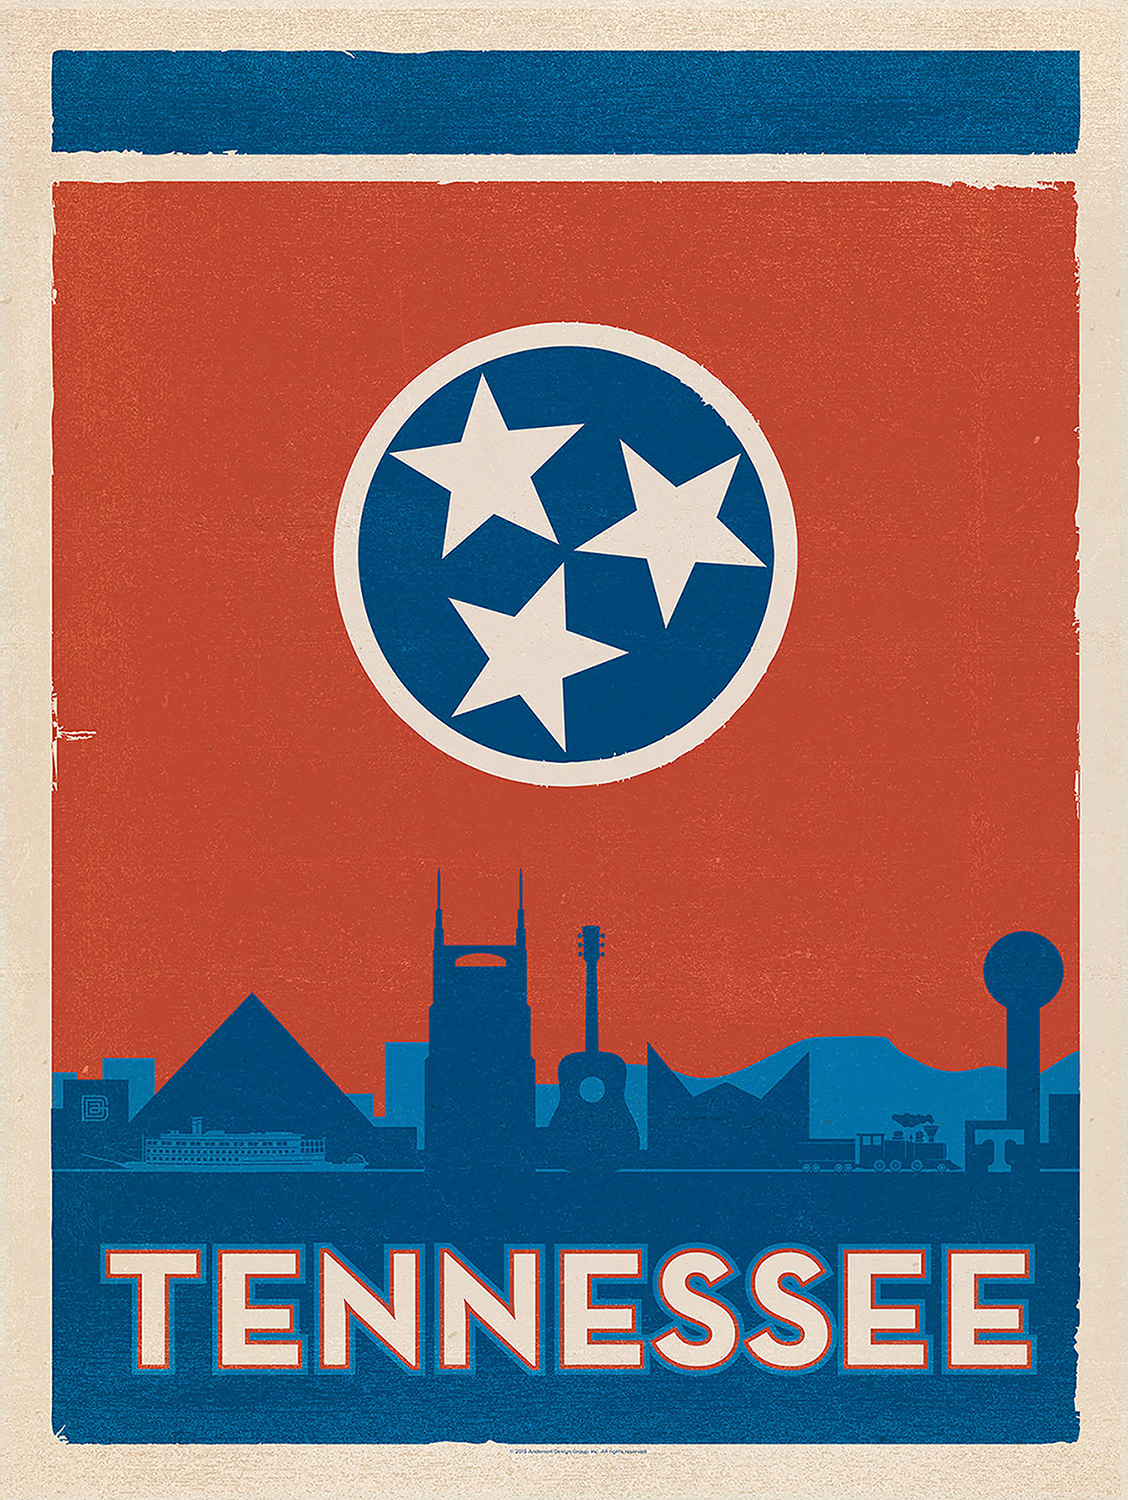 Revenues Up in Tennessee